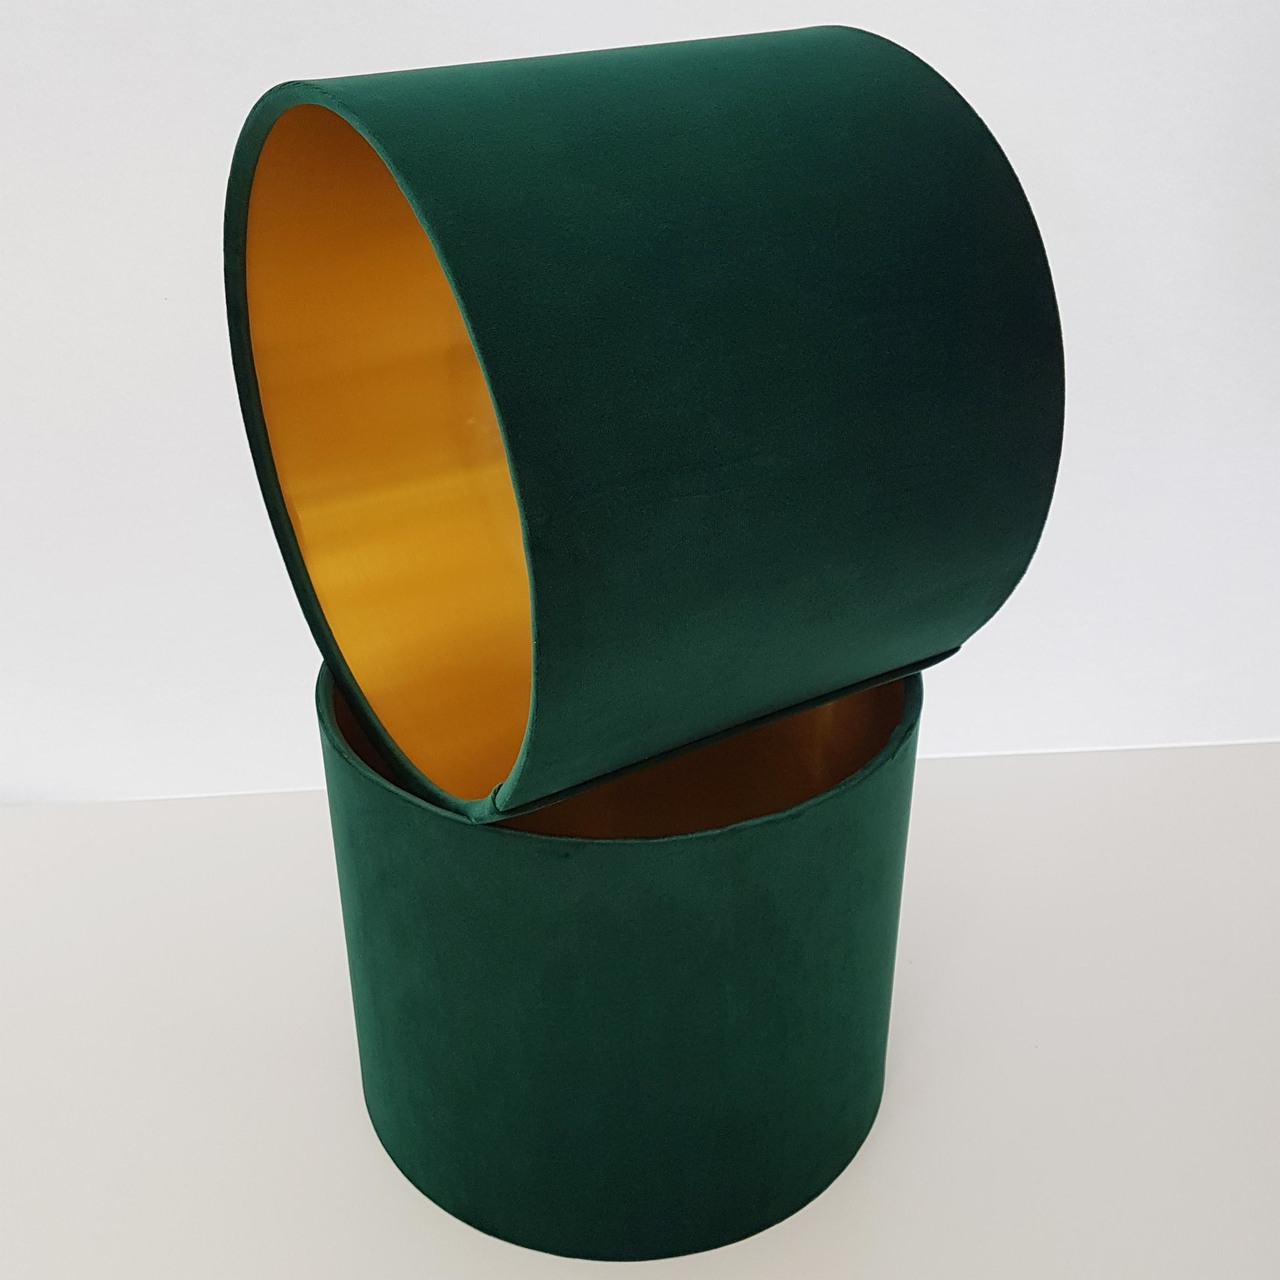 Green Velvet Lampshades in Chatham Glyn London Velvet. Lined with Gold